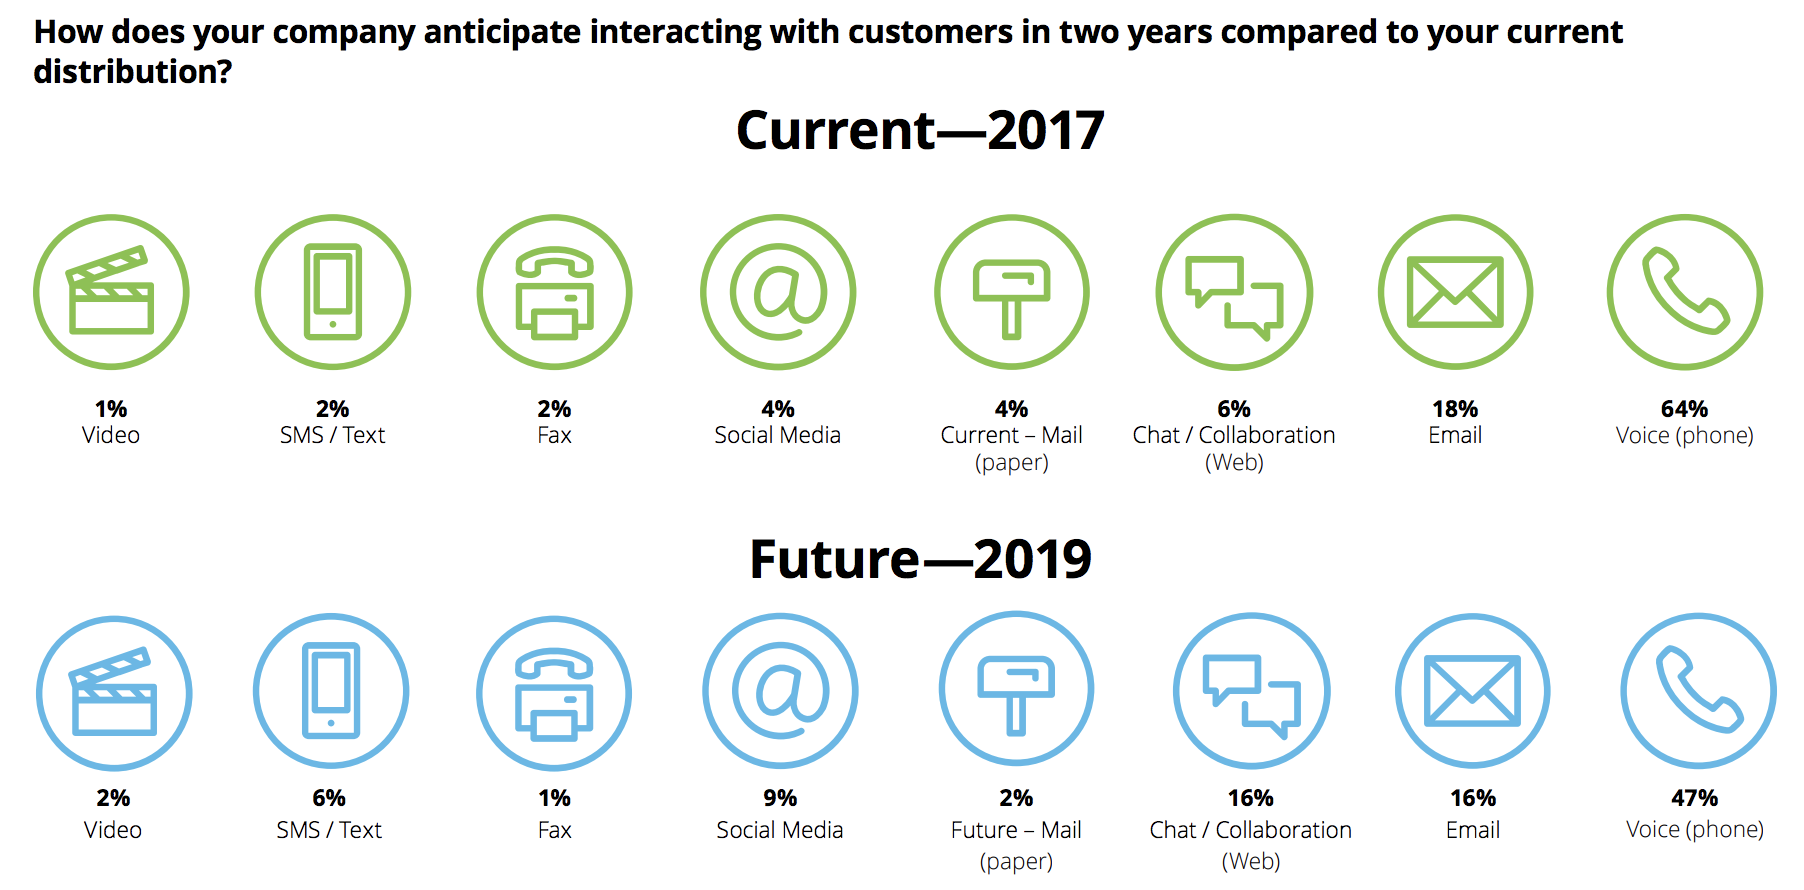 Source: Deloitte Global Contact Center Survey 2017